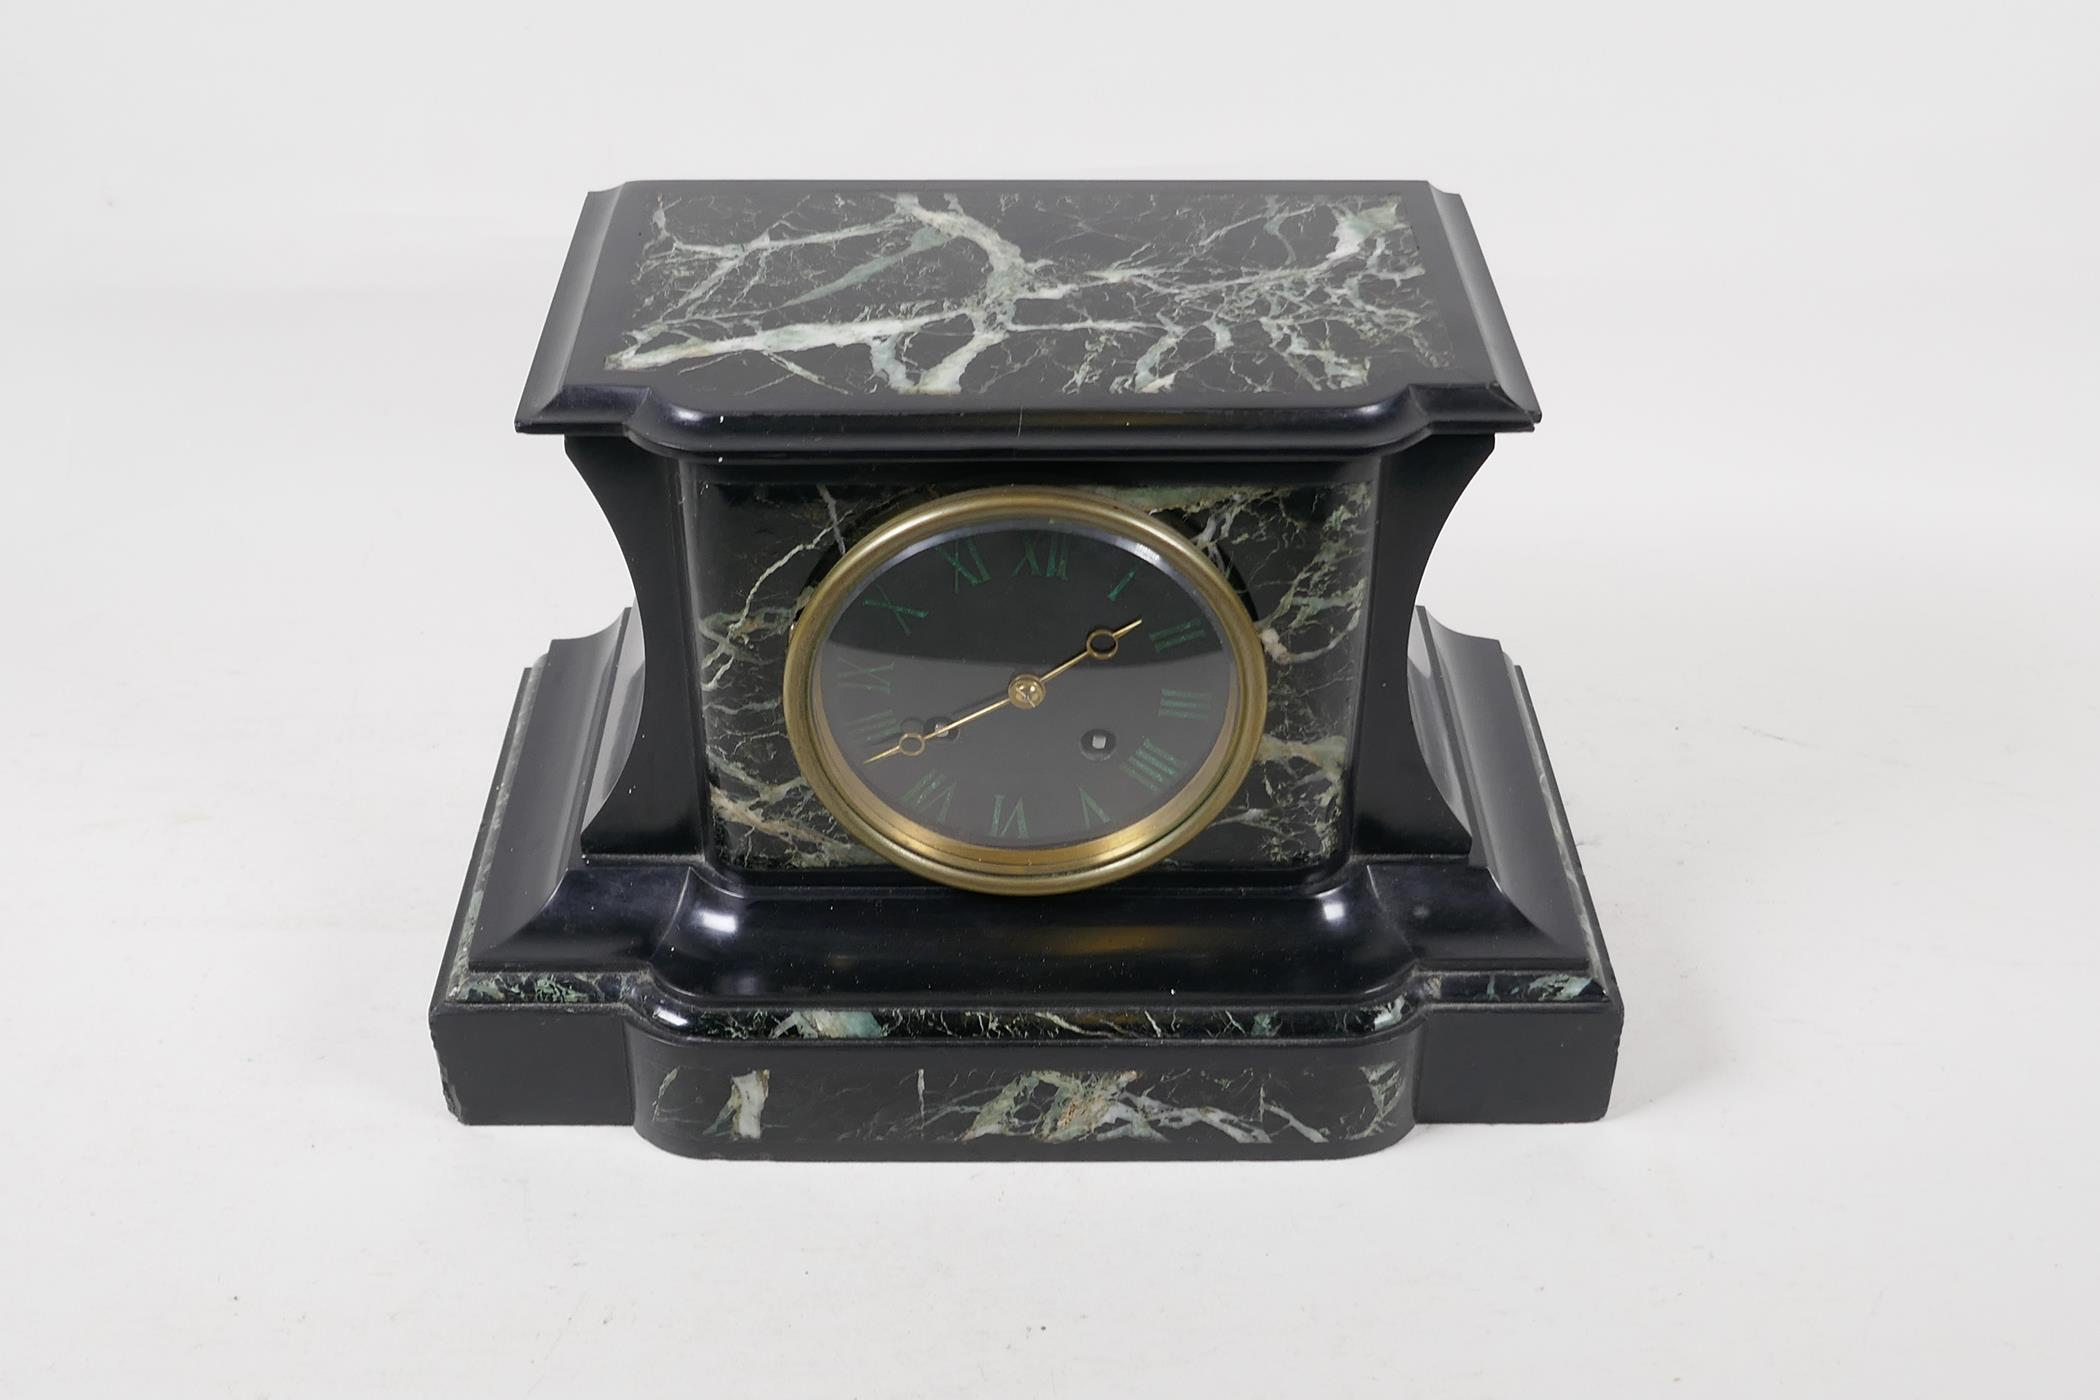 A C19th French vert de mer marble and slate mantel clock with inset malachite Roman numerals, the - Image 2 of 5